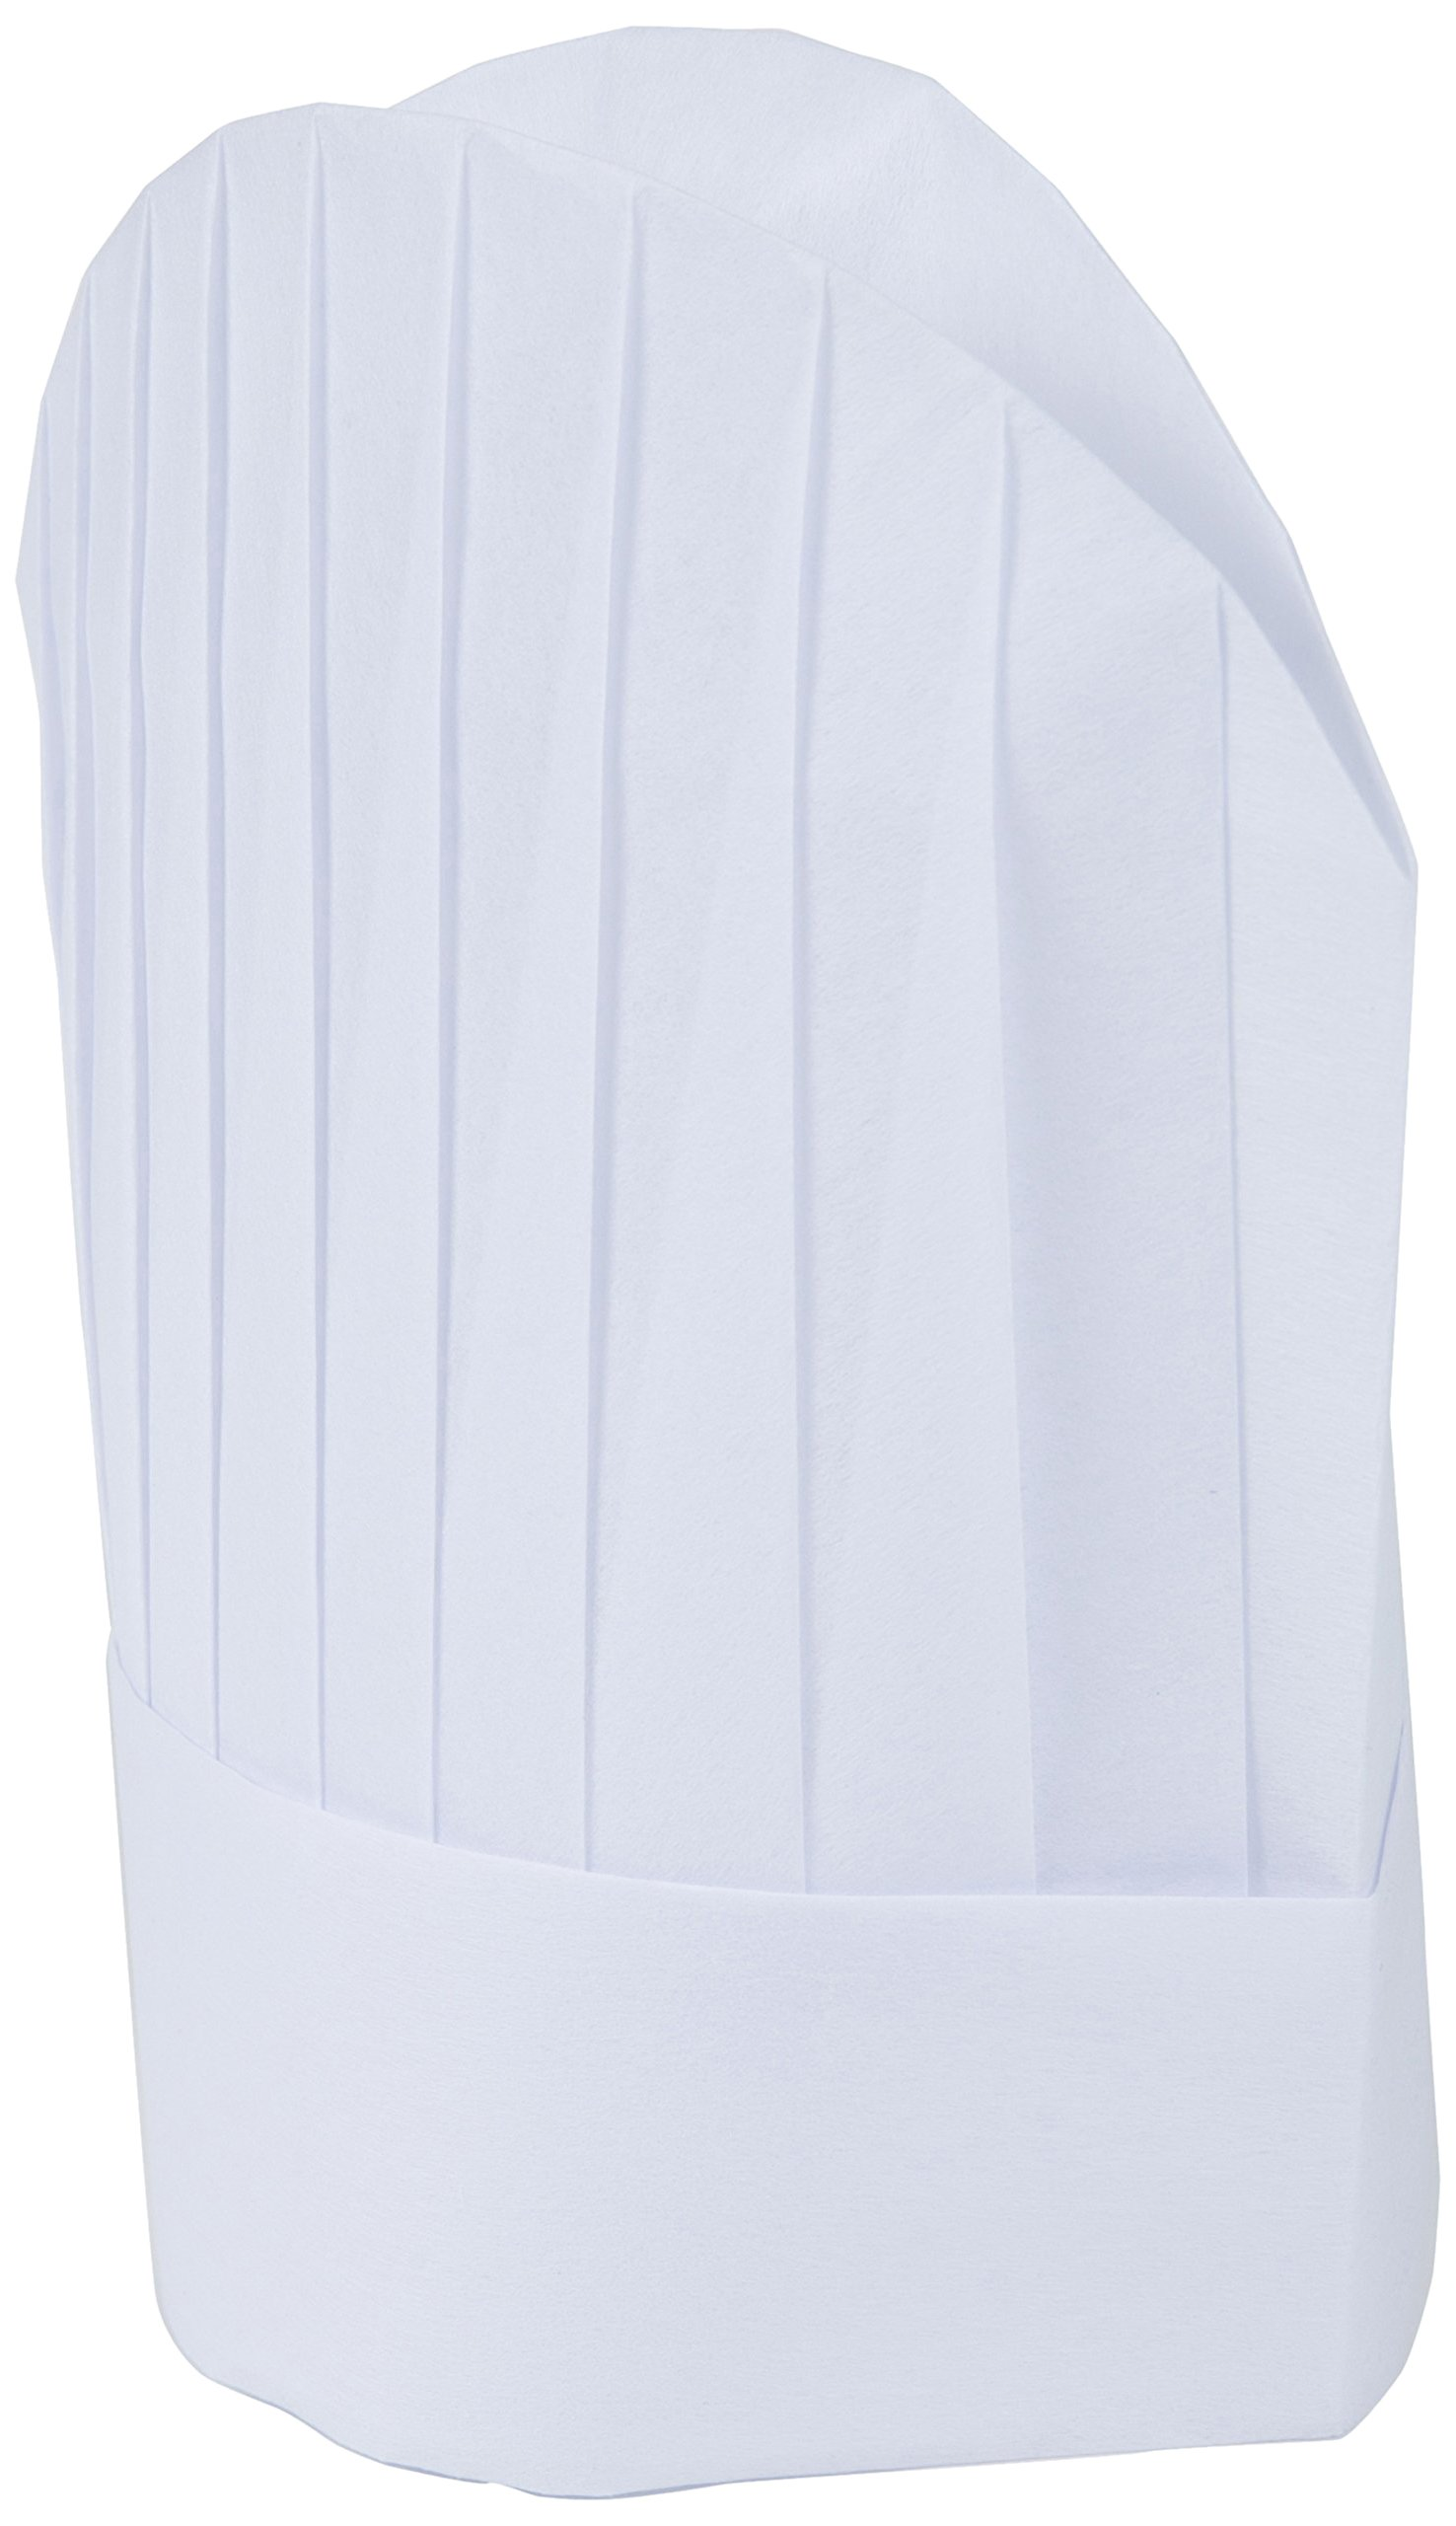 Mercer Culinary Non-Woven Oval Chef Toque, 8 1/2 Inch, White, 10 Pack by Mercer Culinary